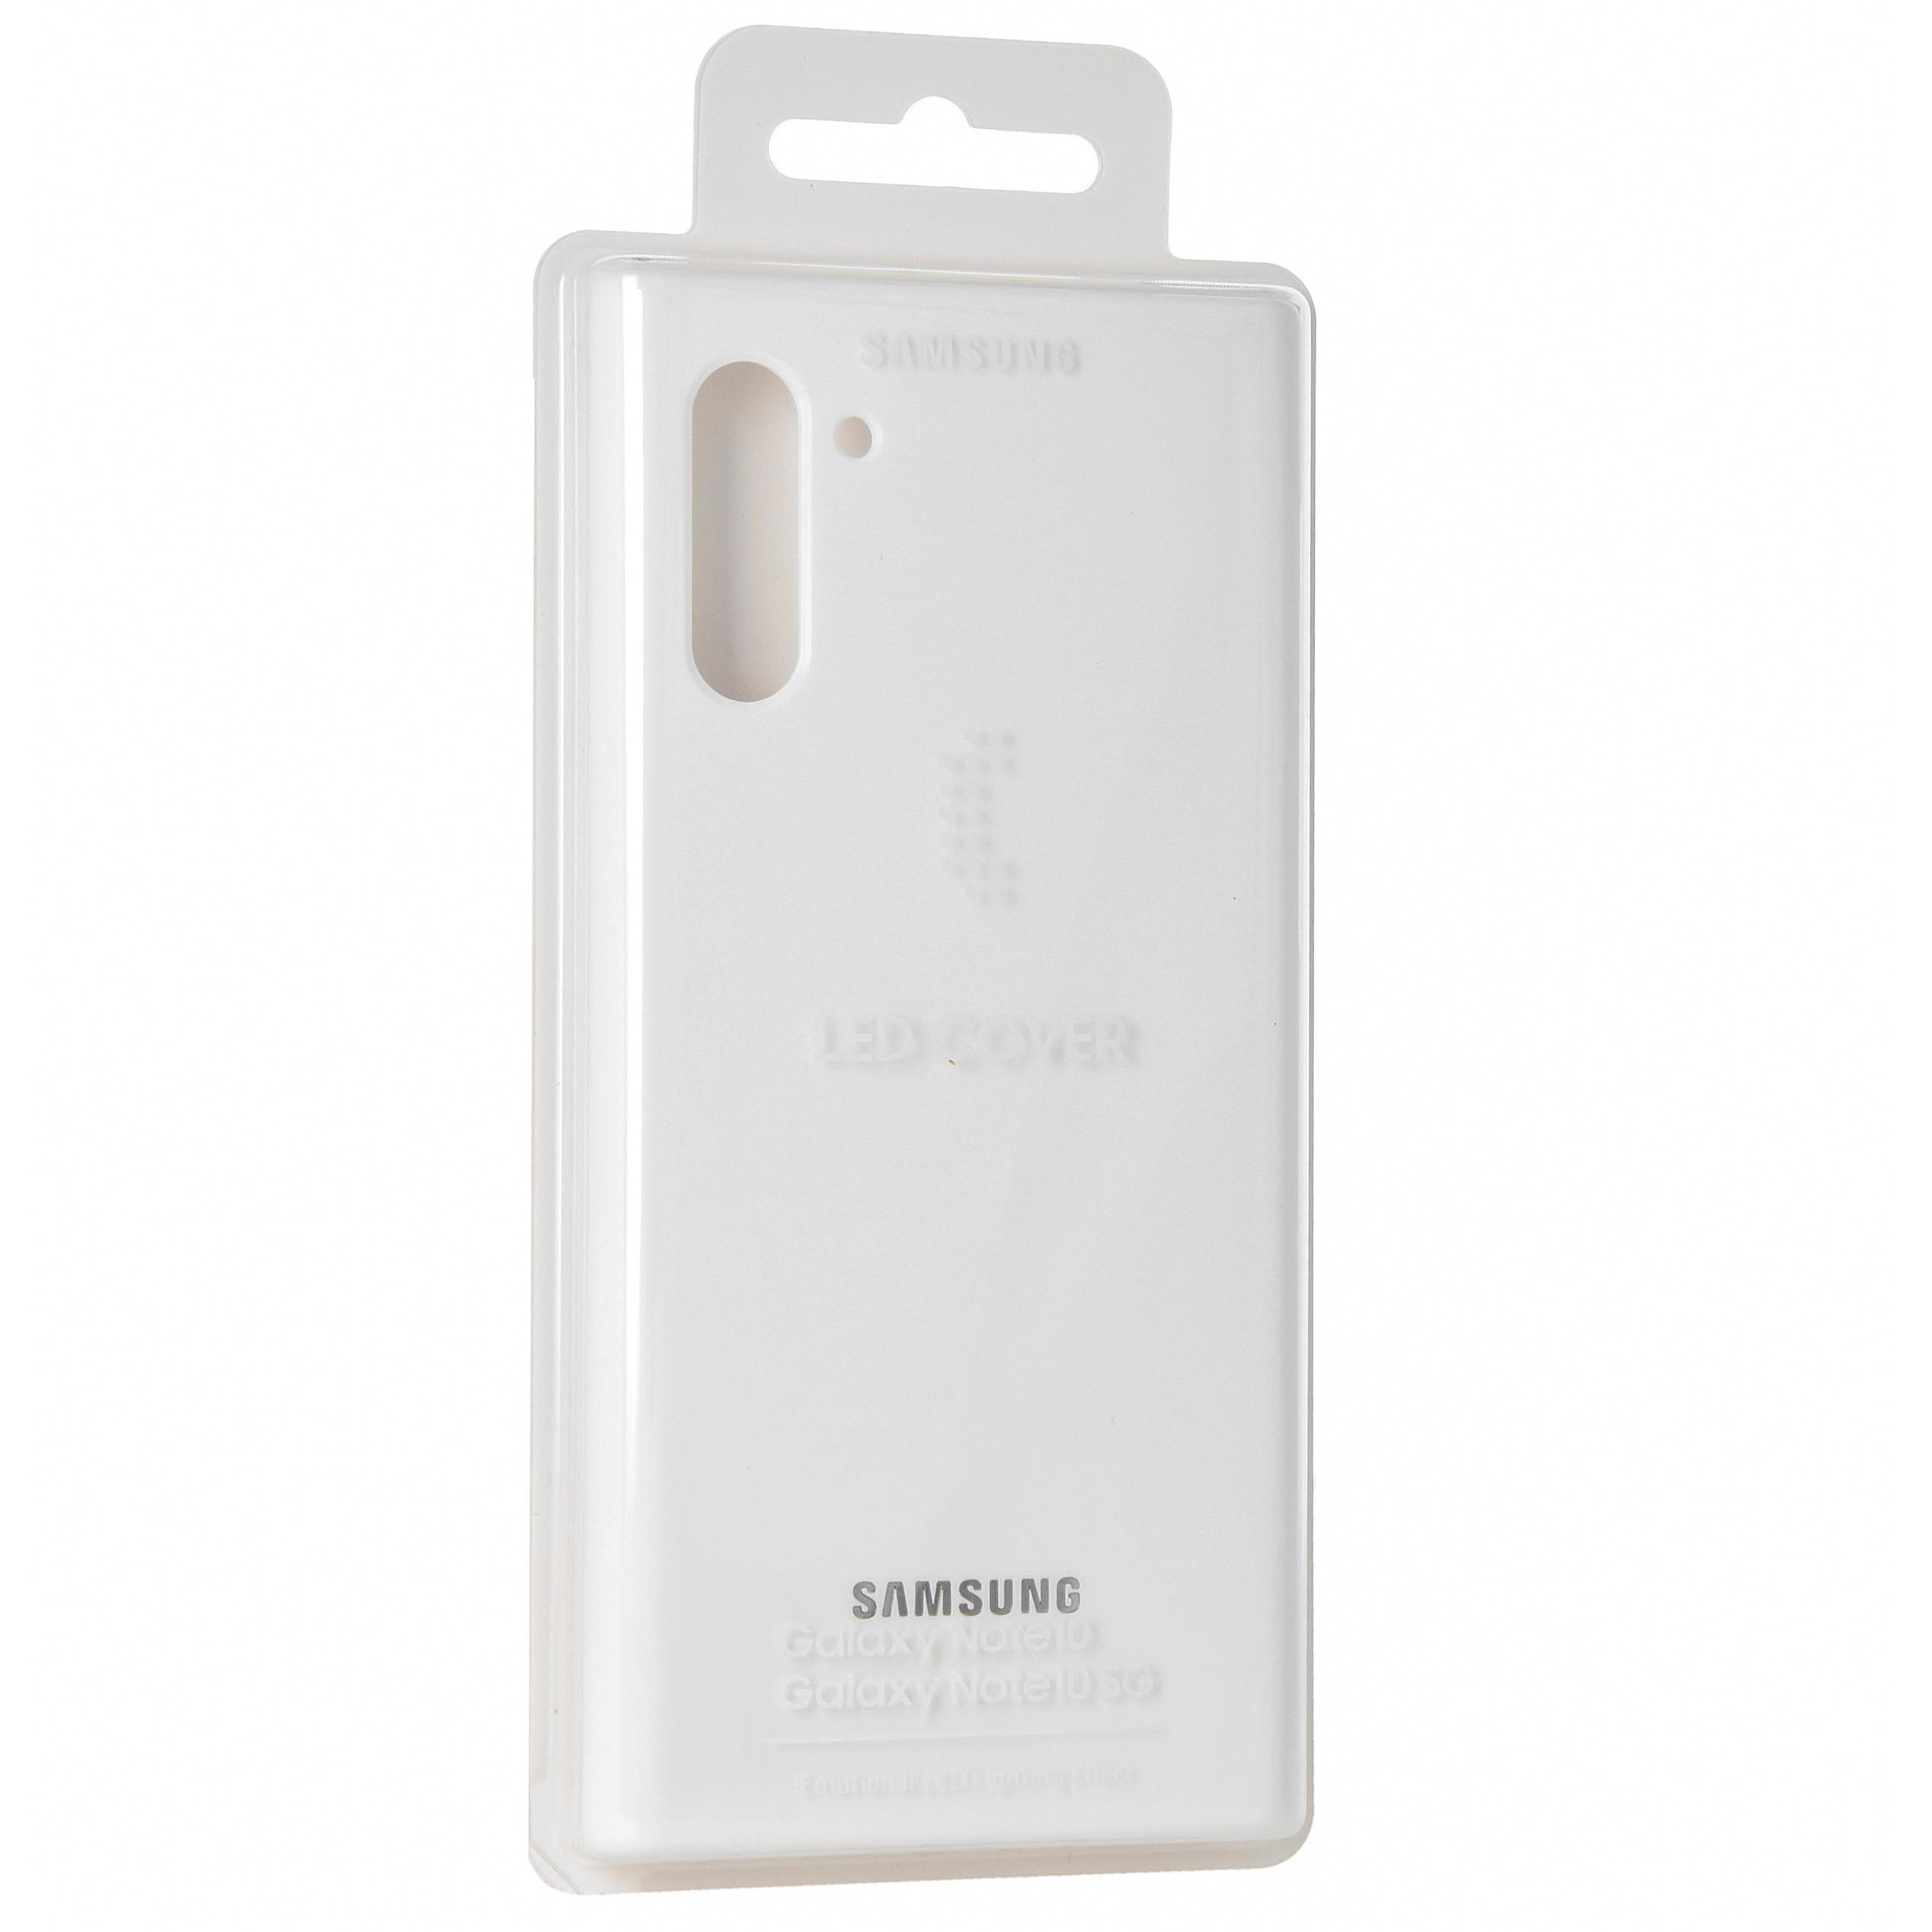 Etui Samsung LED Cover dla Galaxy Note 10